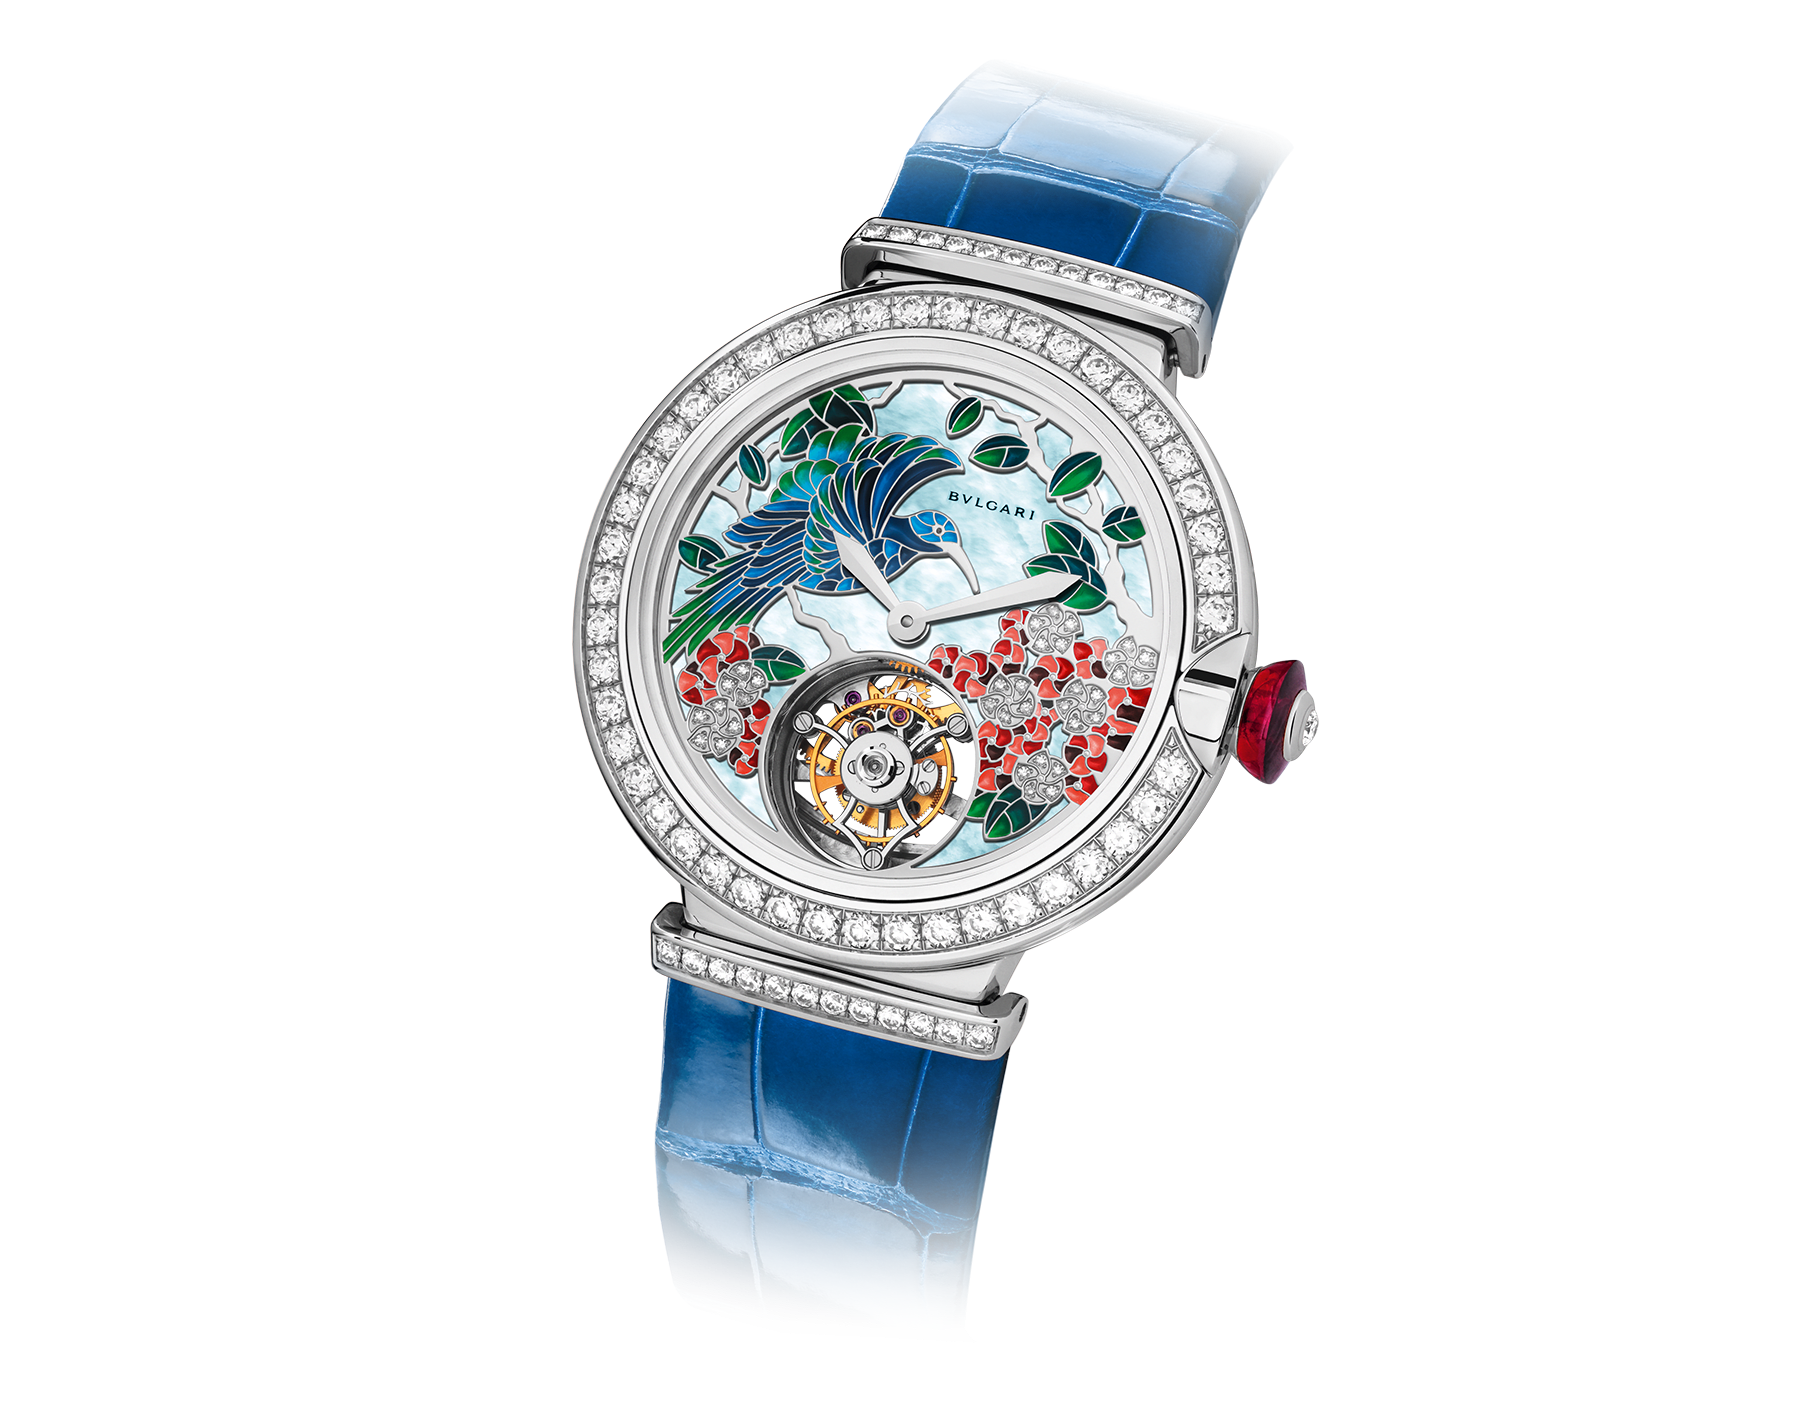 LVCEA Tourbillon with mechanical manufacture movement, automatic winding, see-through tourbillon and sapphire bridge. 18 kt white gold case set with brilliant-cut diamonds, metiers d'art peinture miniature motifs dial set with diamonds and blue alligator bracelet. 102579 image 2